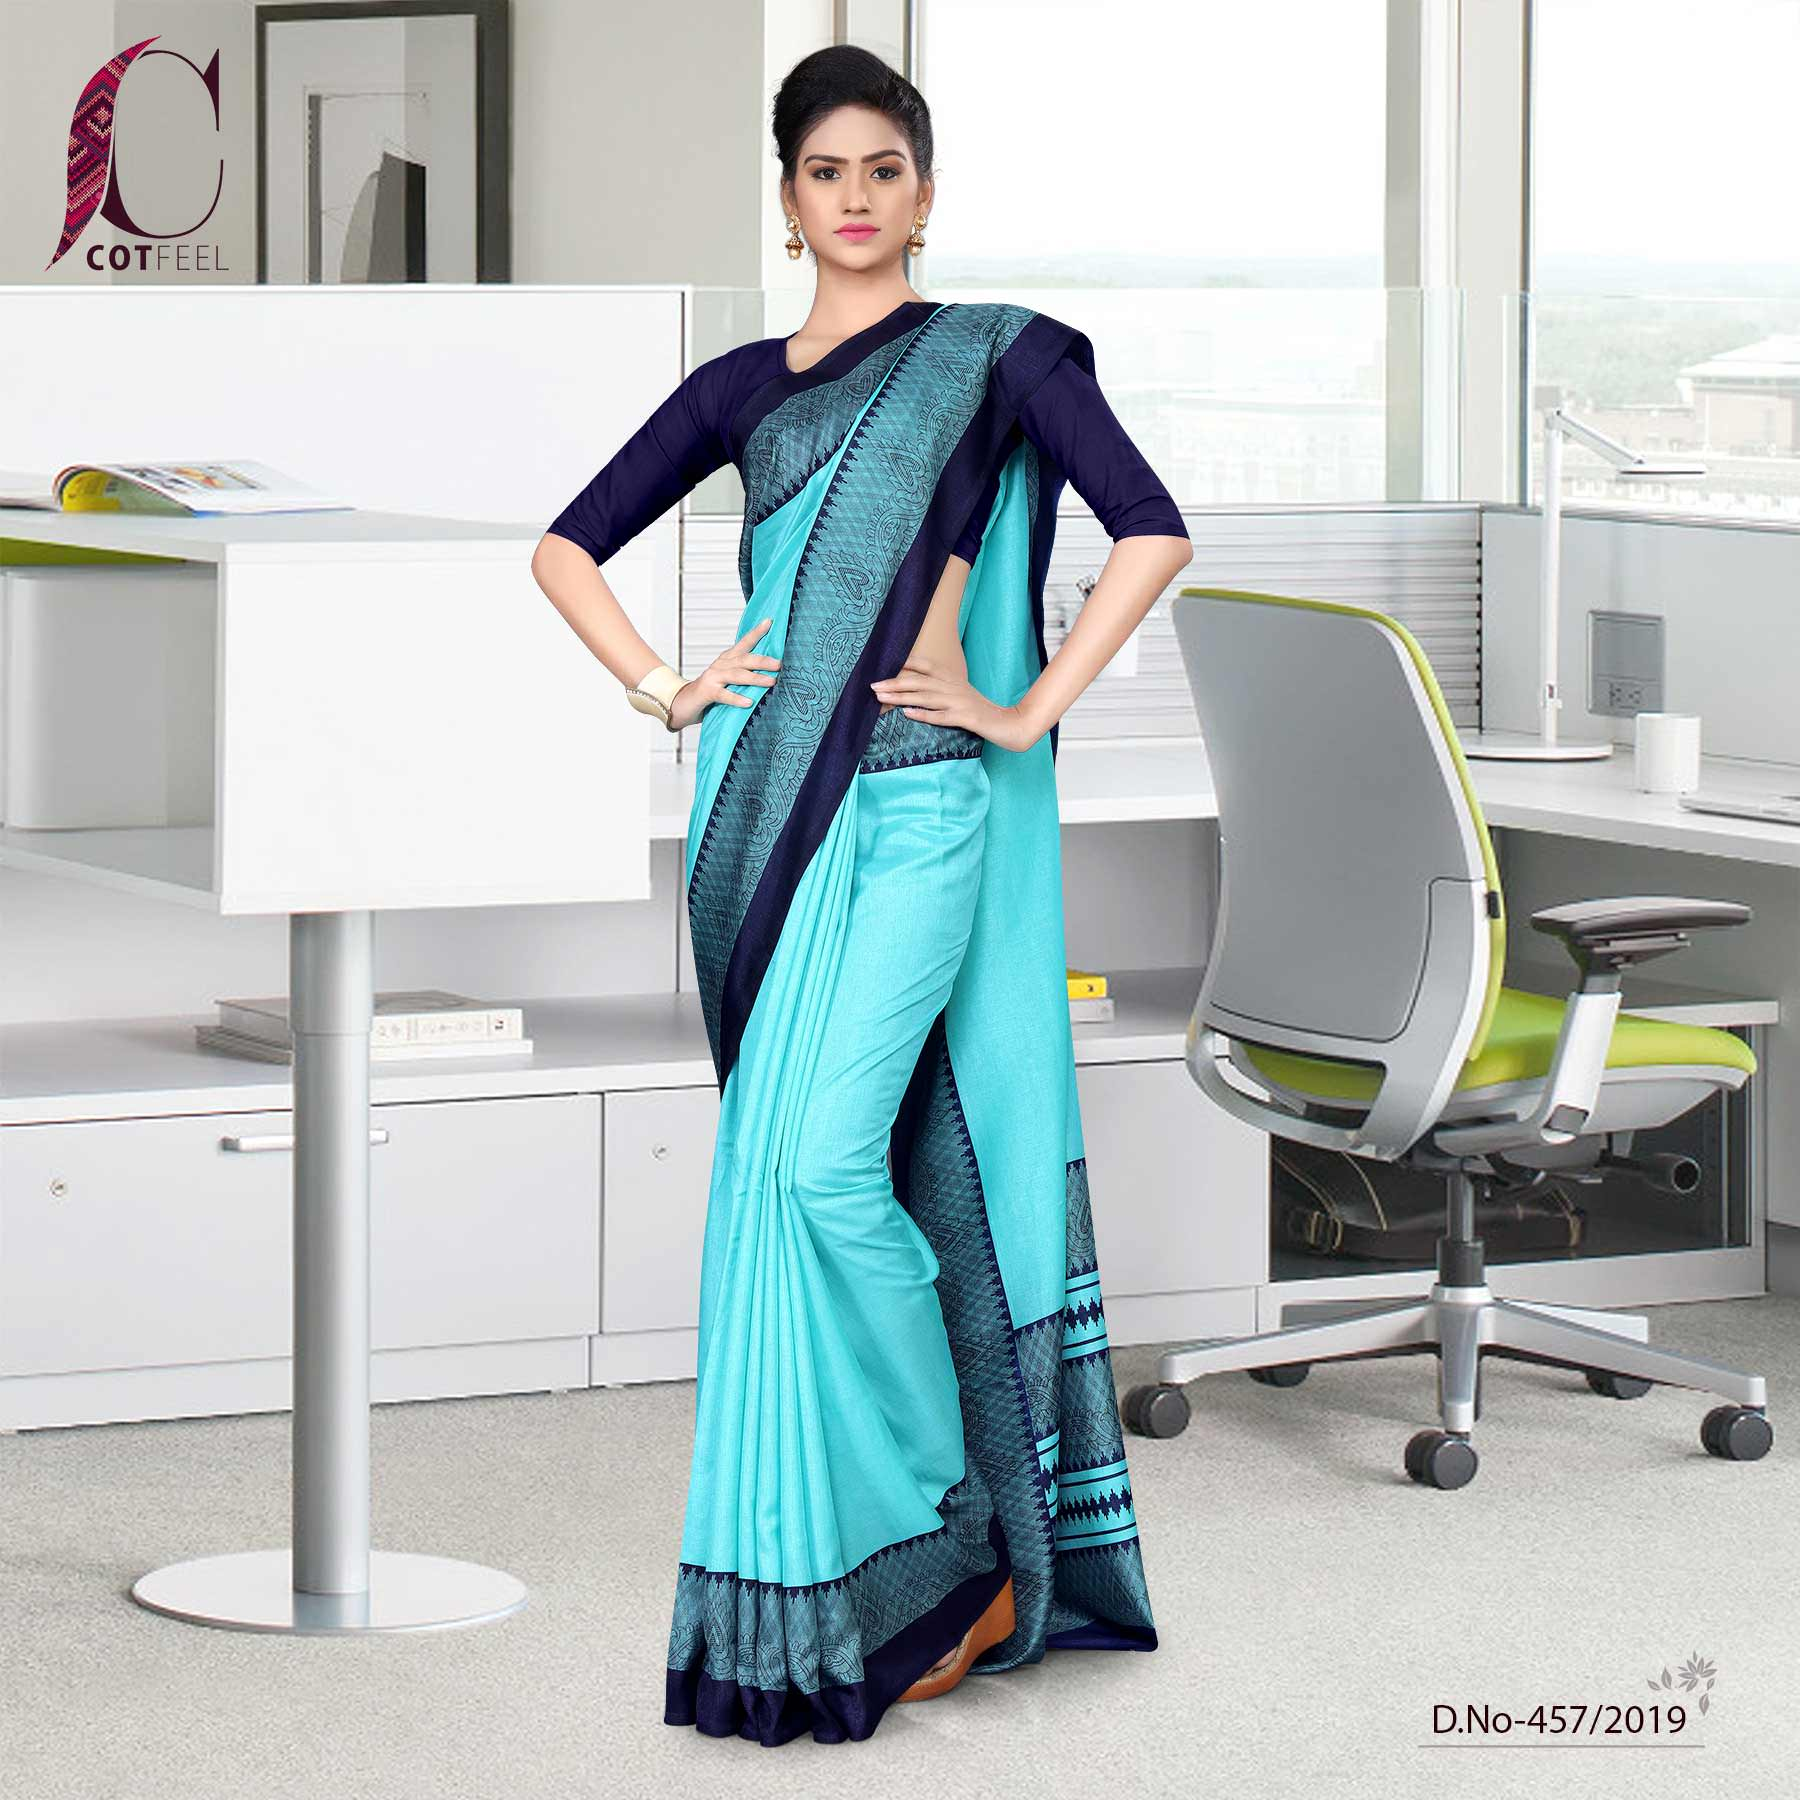 Turquoise and navy blue tripura cotton institute uniform saree